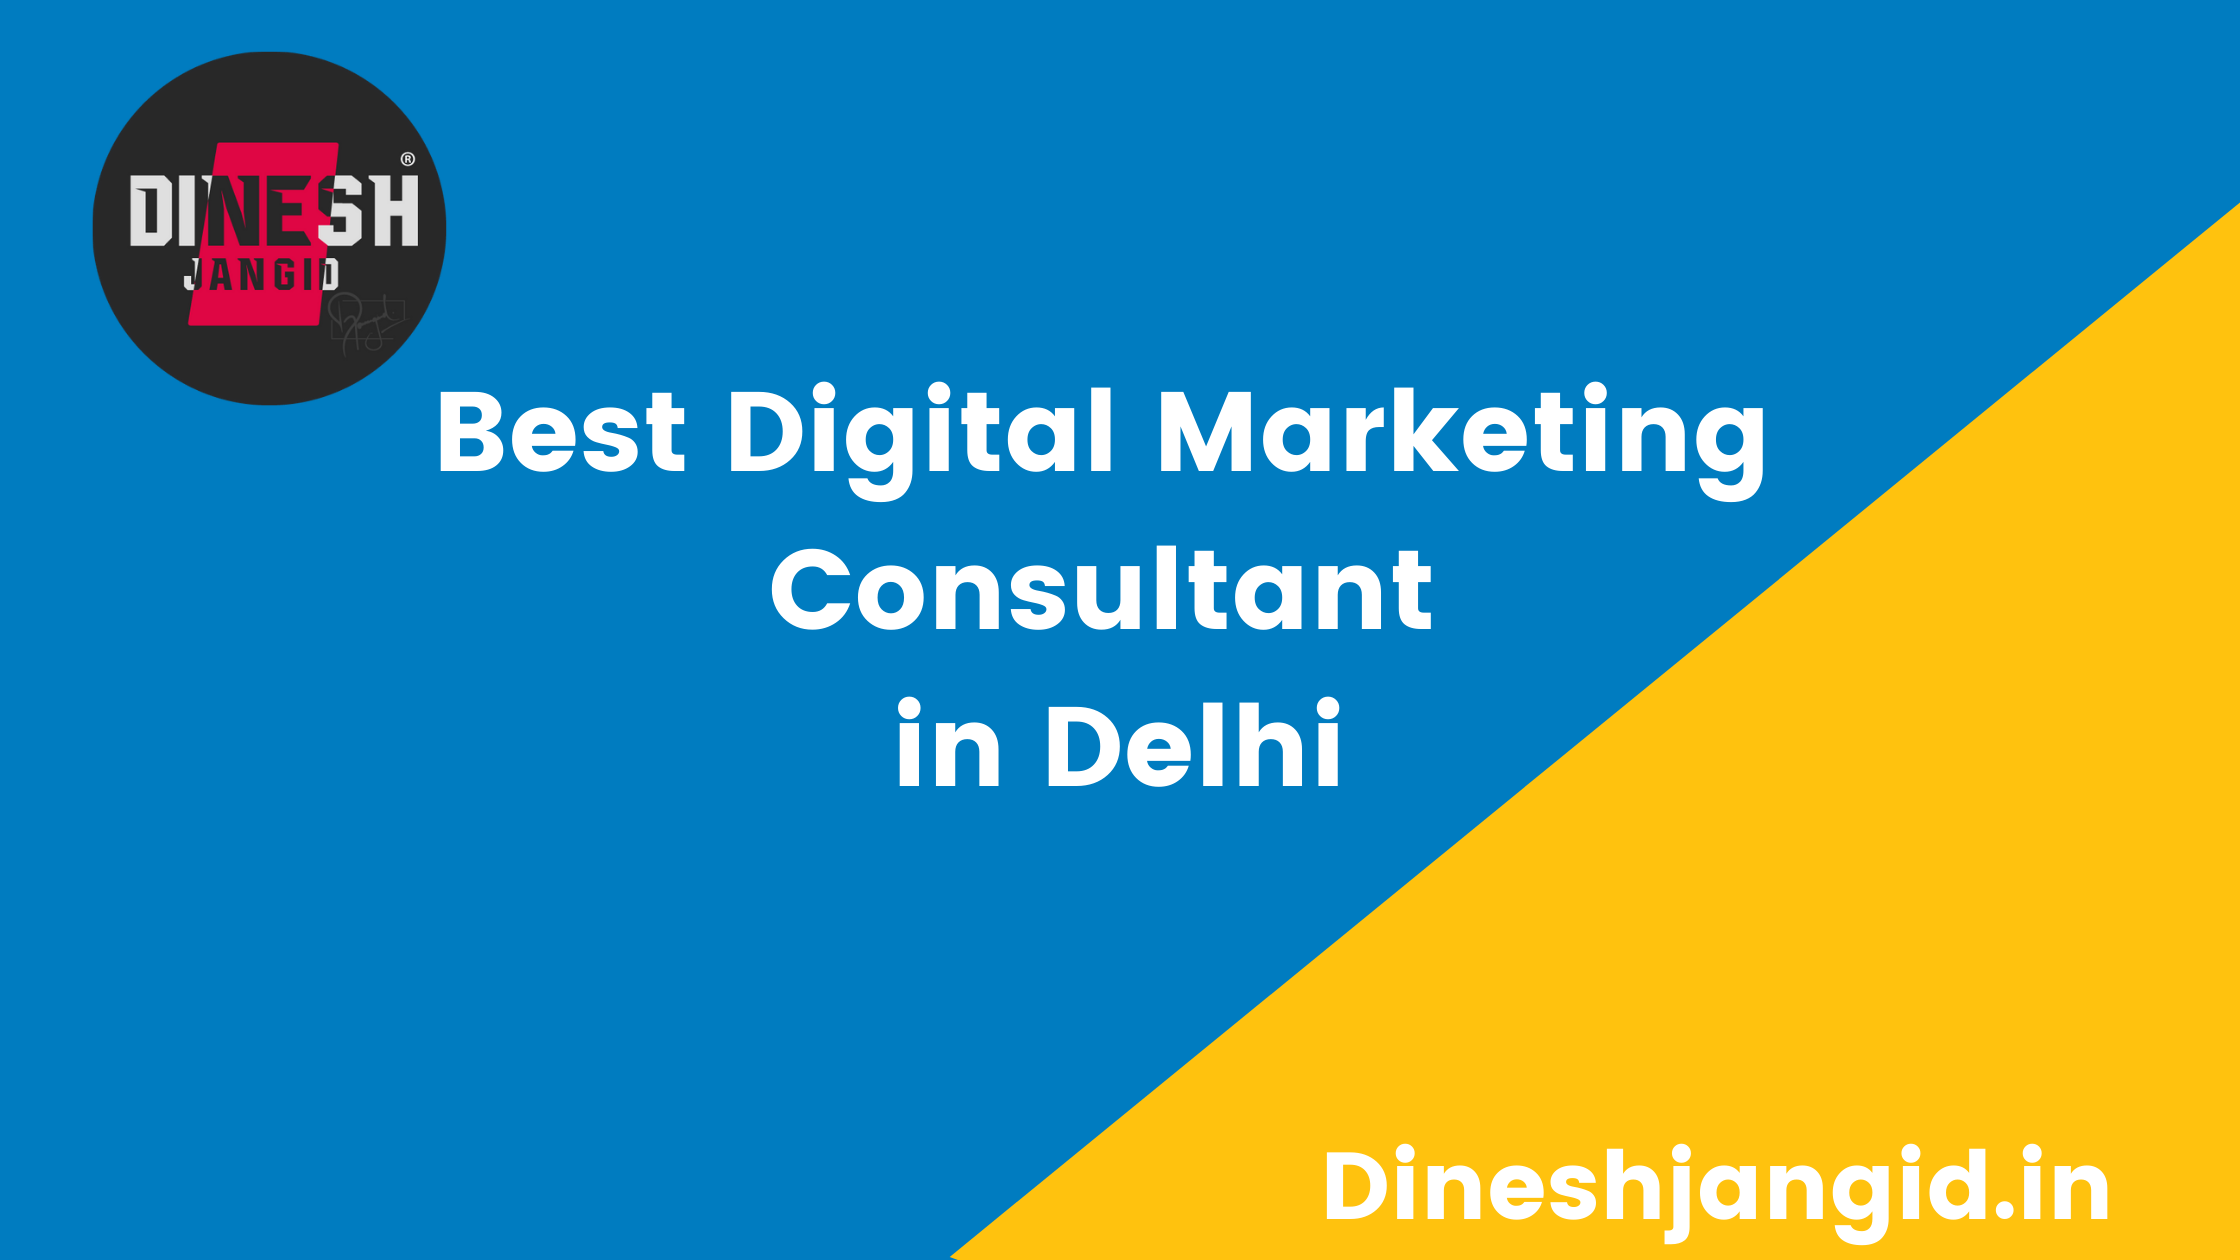 Best Digital Marketing Consultant in Delhi, India